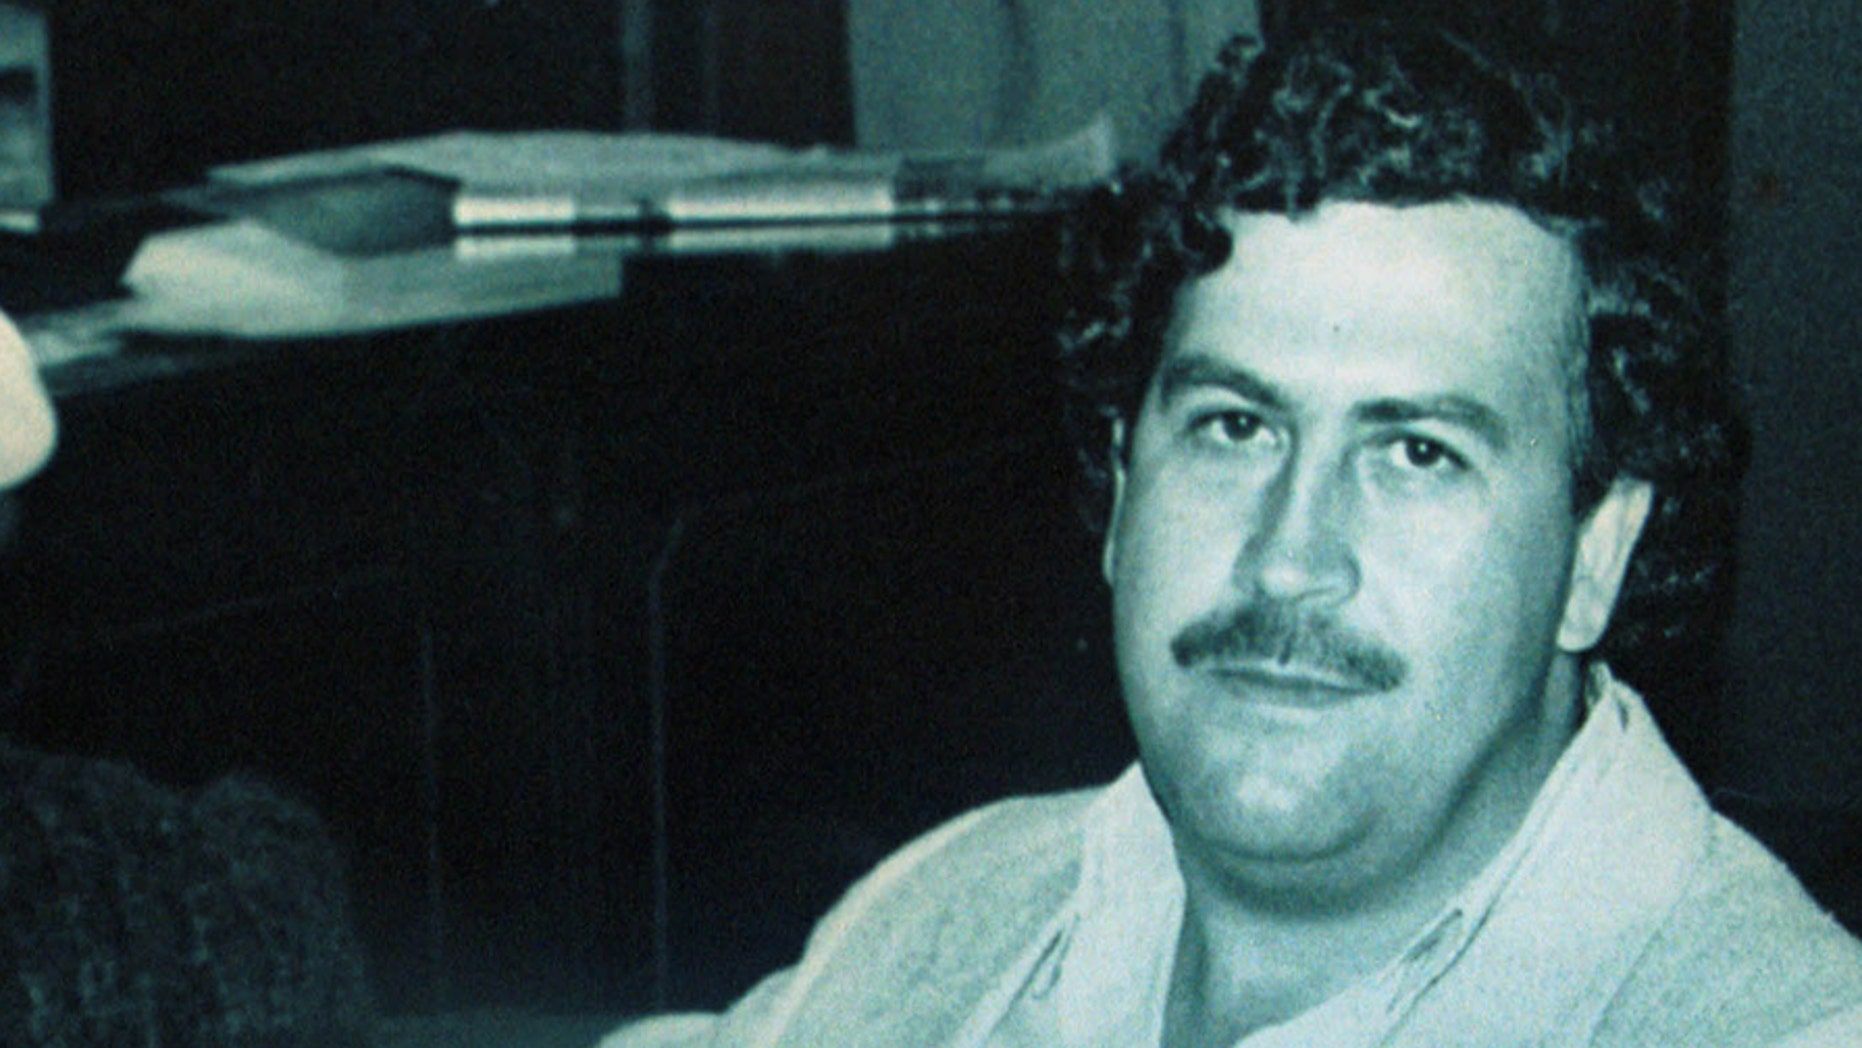 Colombian drug lord Pablo Escobar appears in this file photograph when Escobar was a member of the Colombian Congress in 1983. T